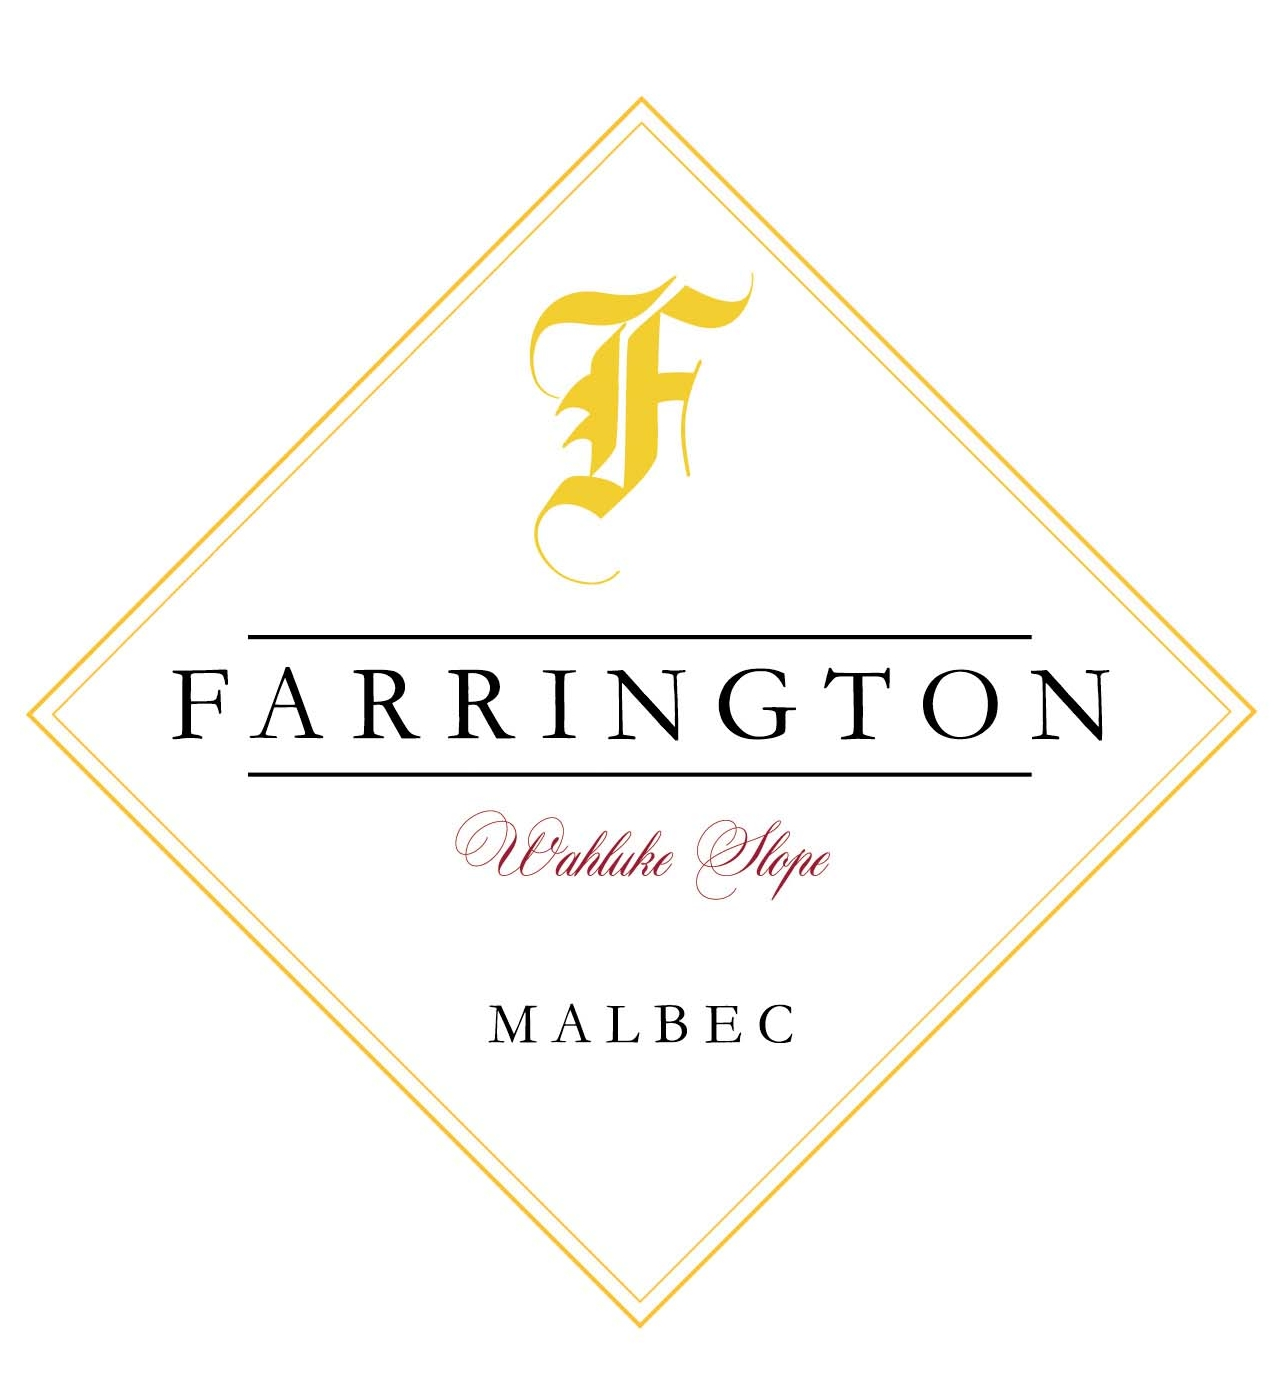 Farrintgon-label.jpg